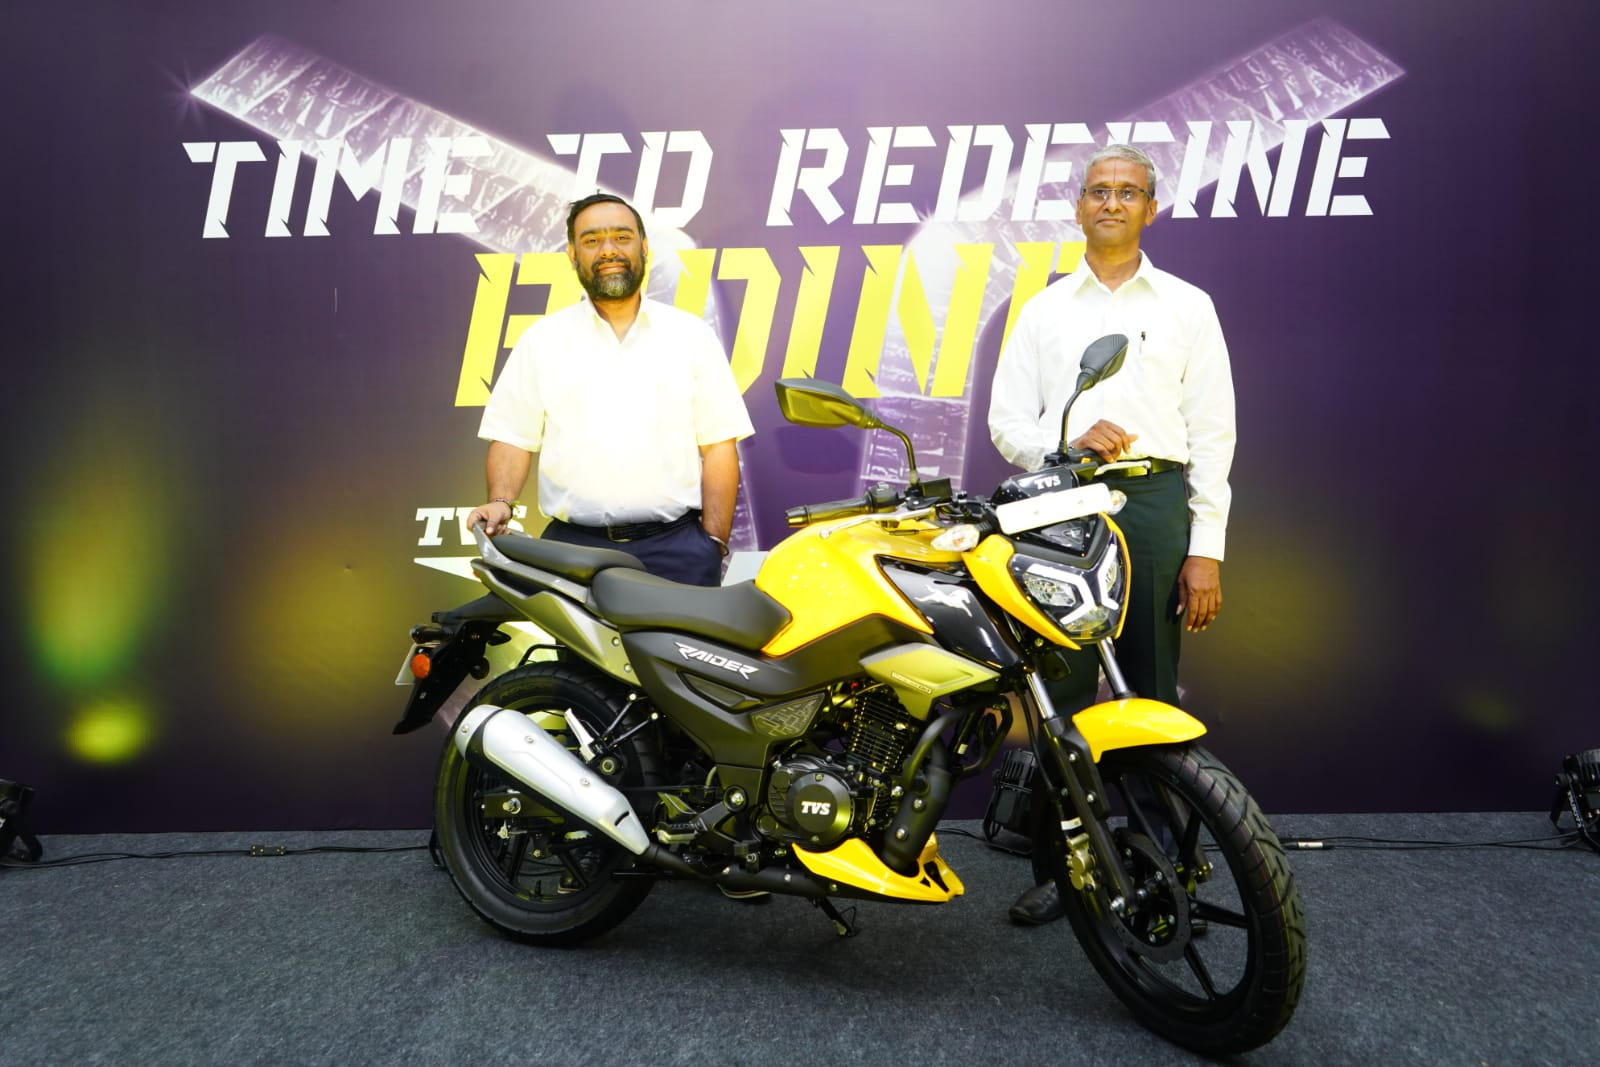 TVS launched Naked Street Design 'TVS Raider'motorcycle@Rs. 77,500